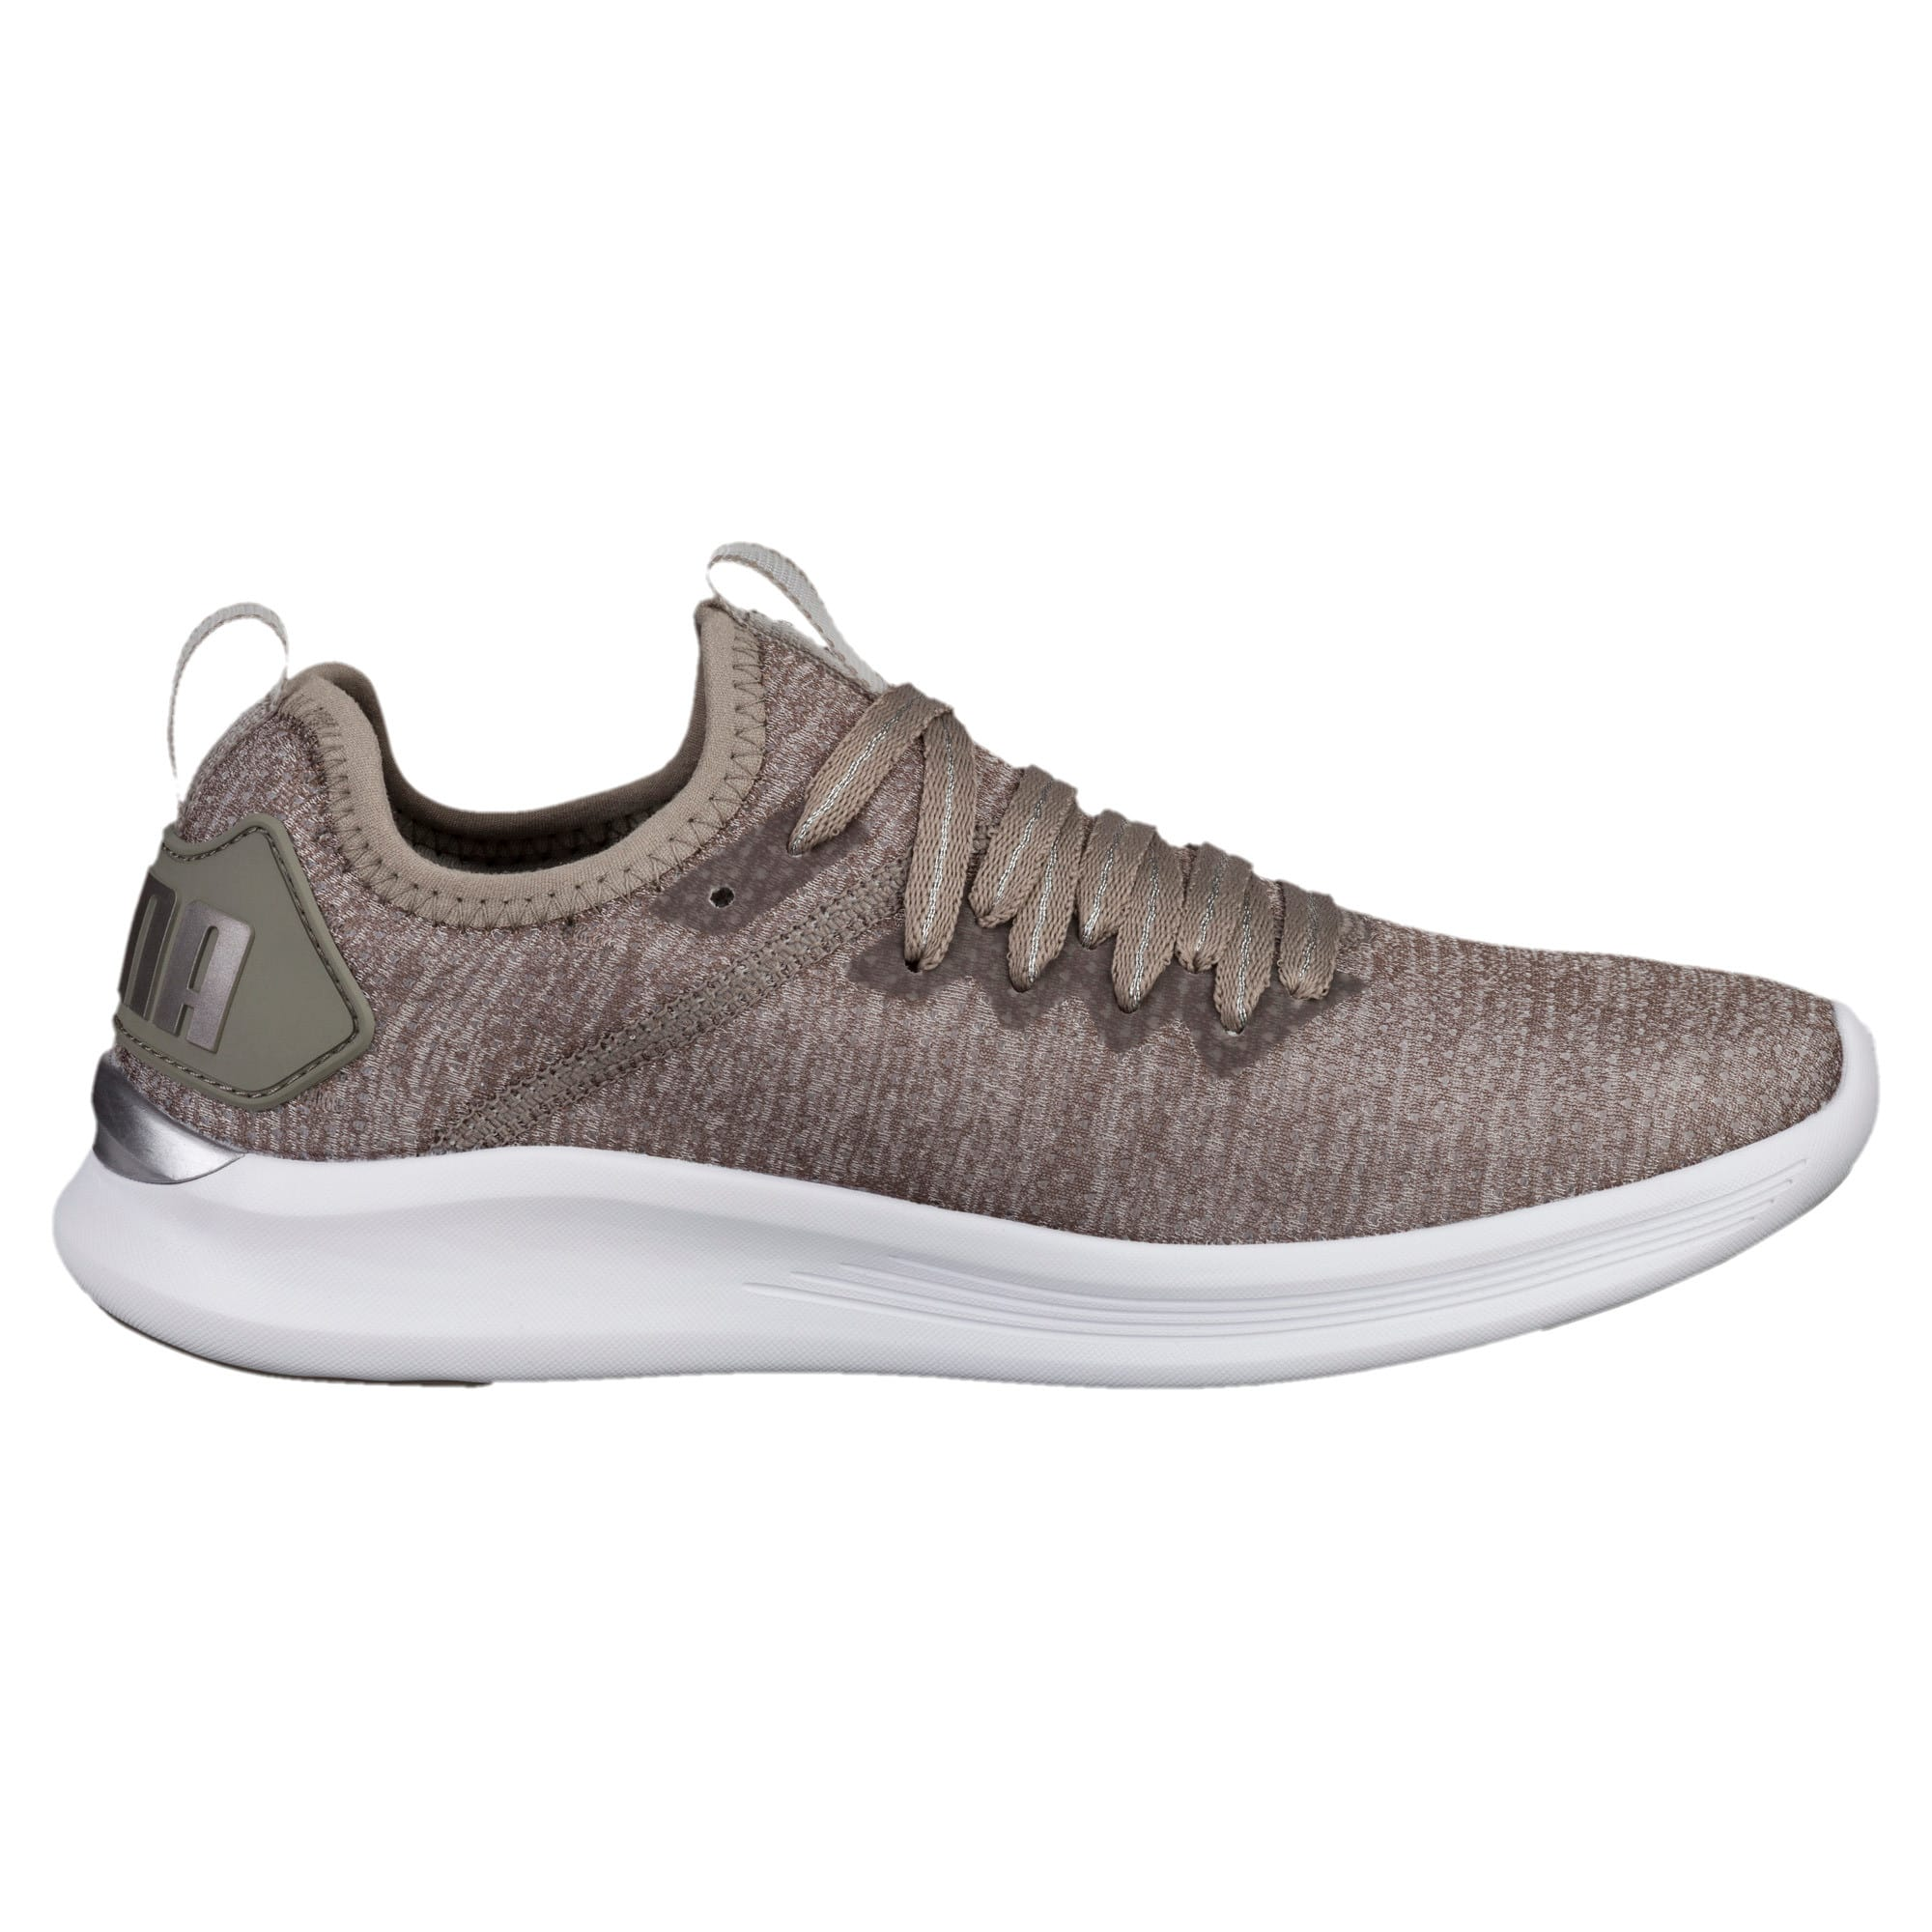 Thumbnail 4 of Flash IGNITE evoKNIT En Pointe Women's Trainers, Rock Ridge-Metallic Beige, medium-IND